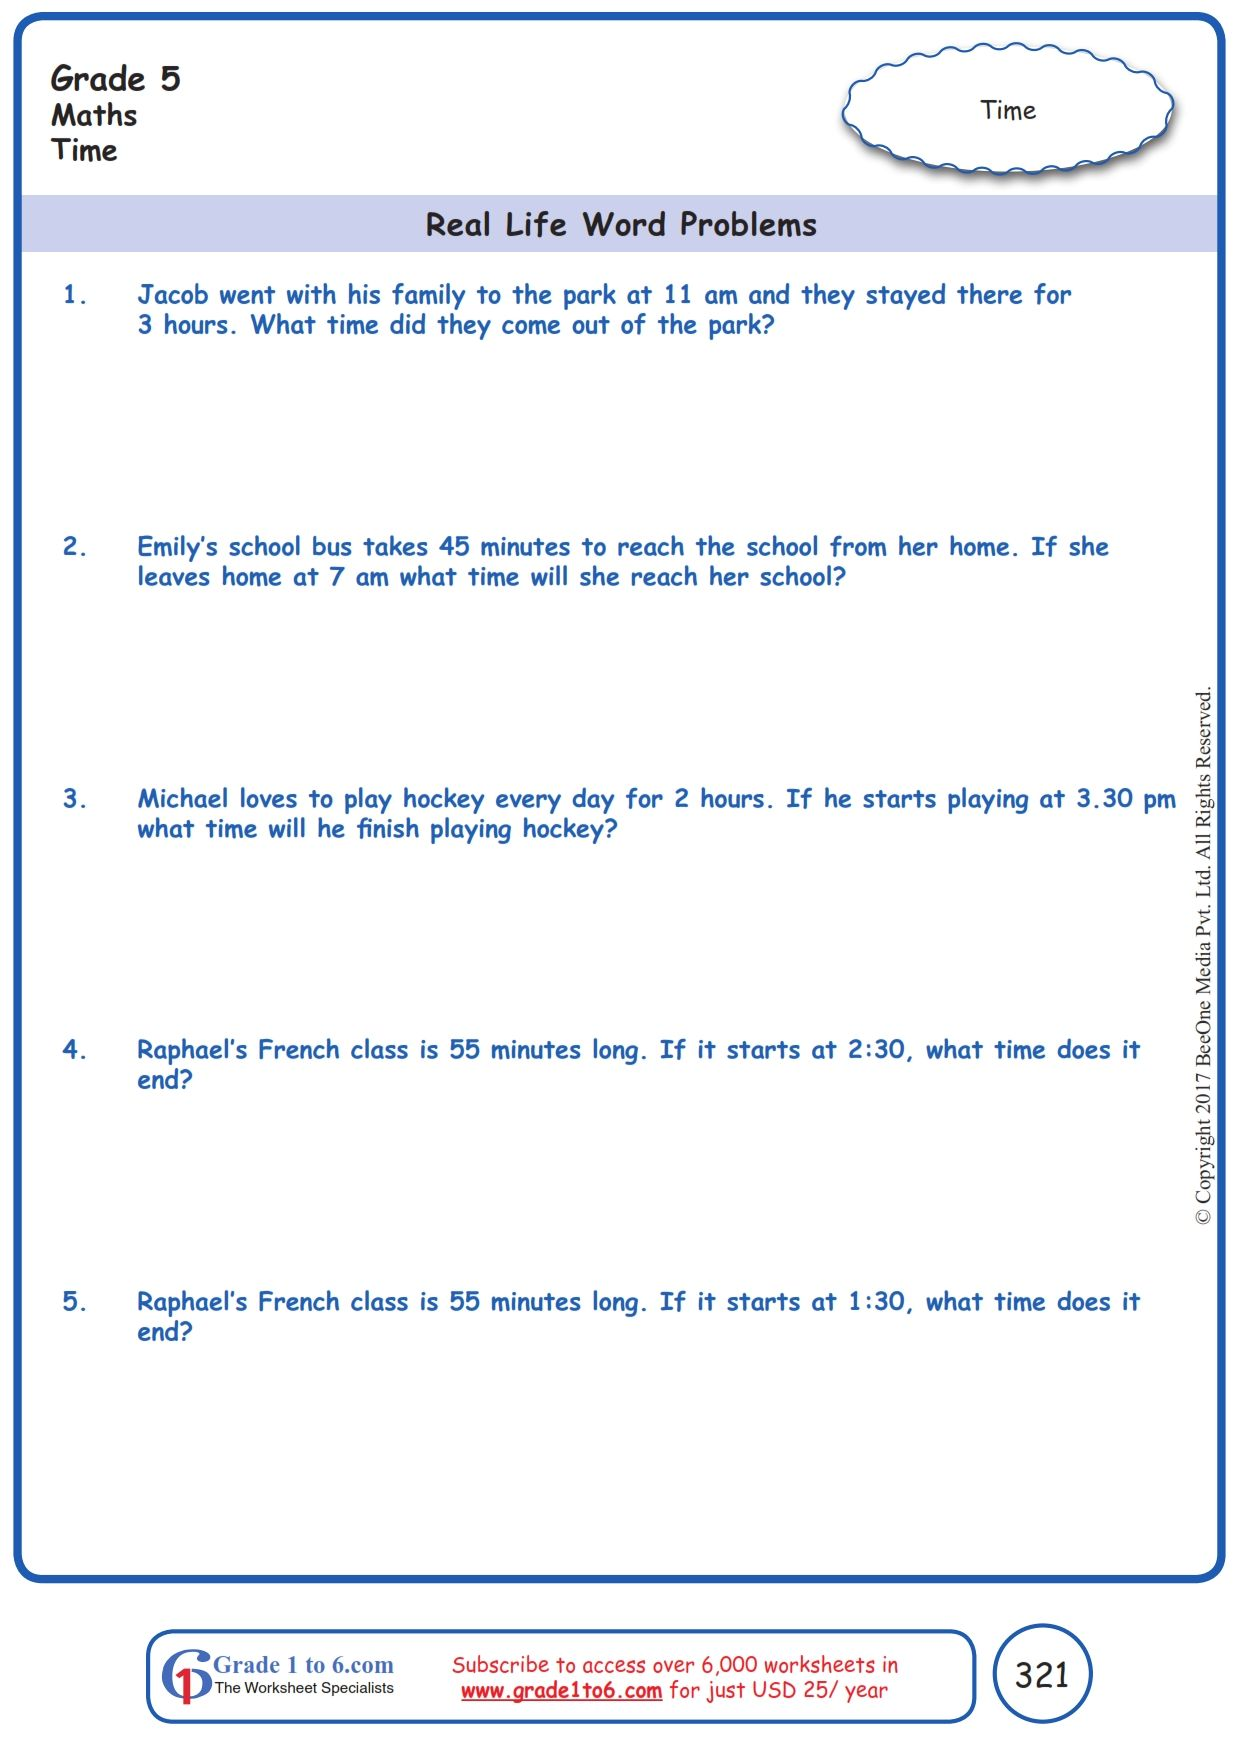 Worksheet Grade 5 Math Real Life Word Problems   Word problem worksheets [ 1754 x 1239 Pixel ]